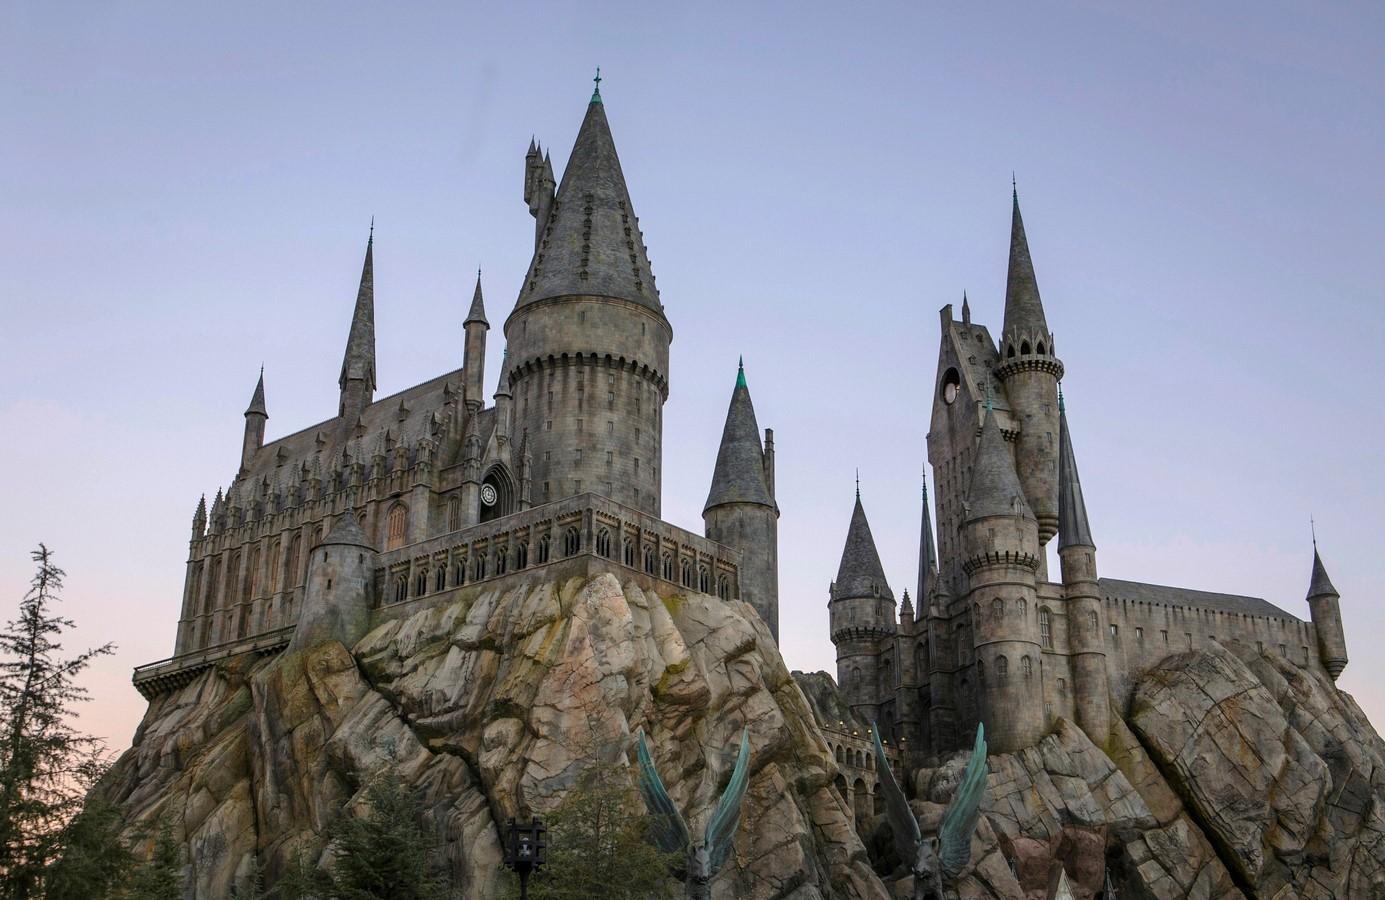 The Wizarding World meets Architectural world - Sheet11